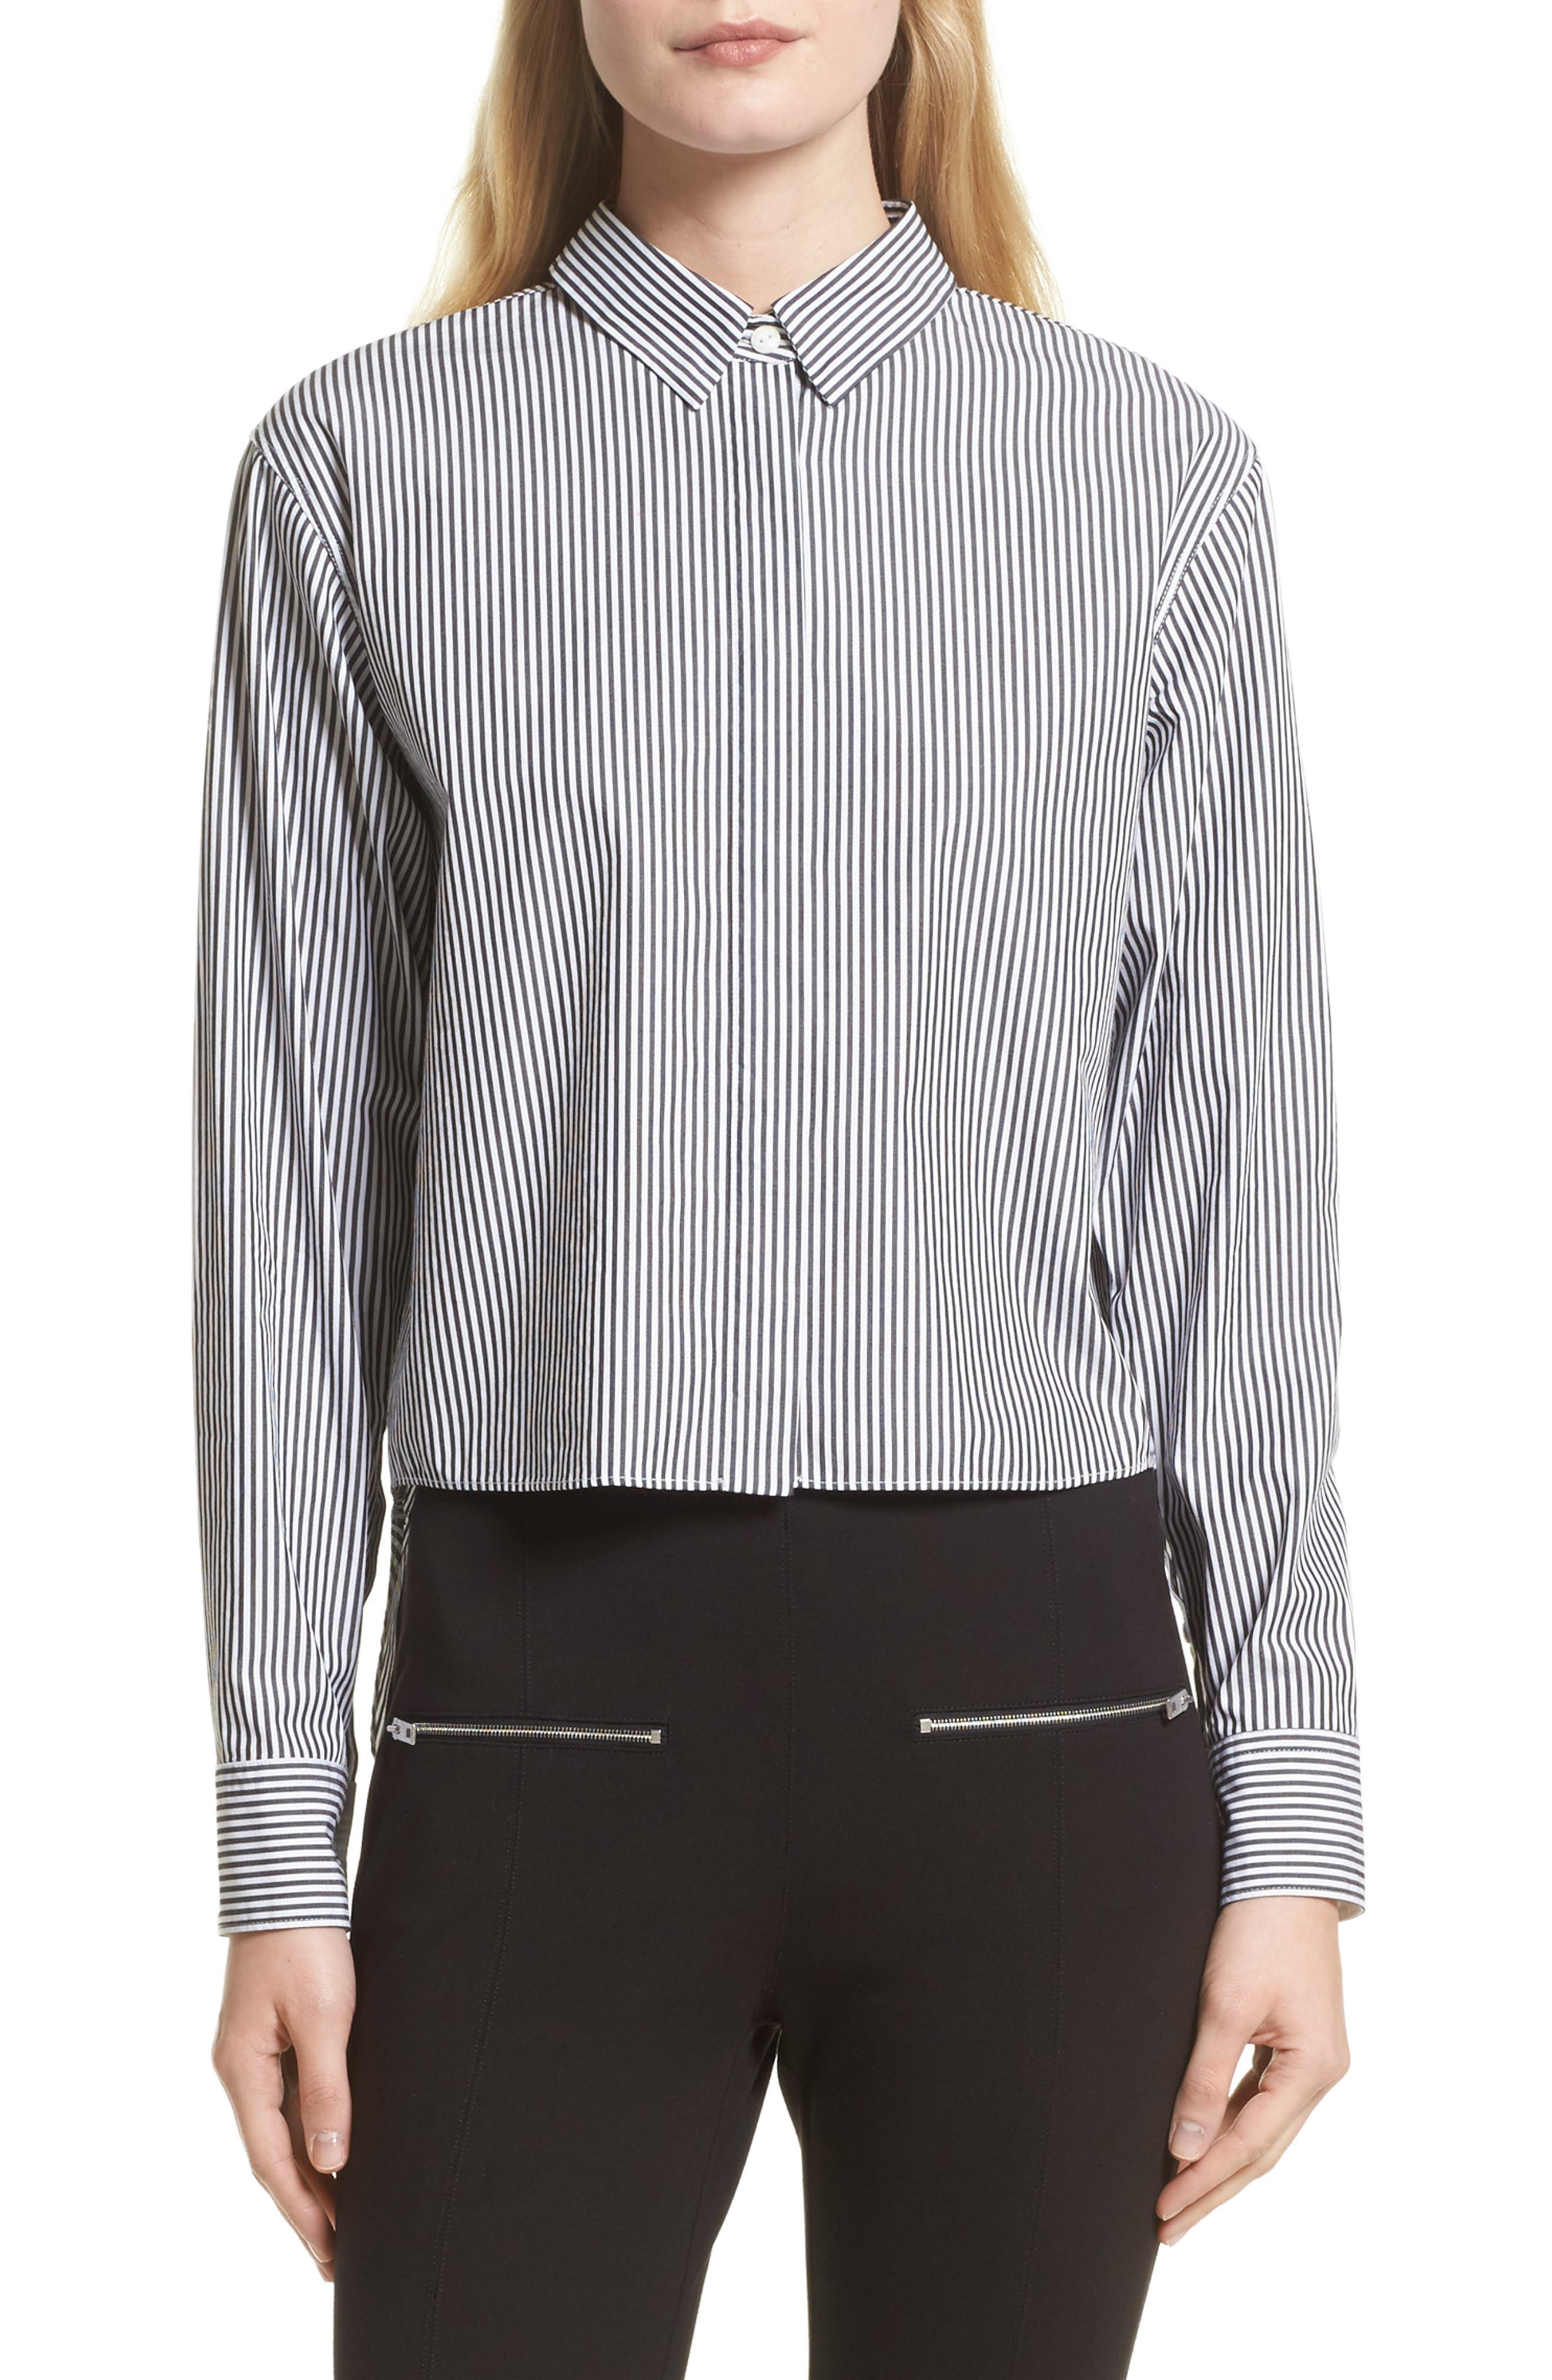 rag & bone Calder Stripe Reversible Top (Nordstrom Exclusive)